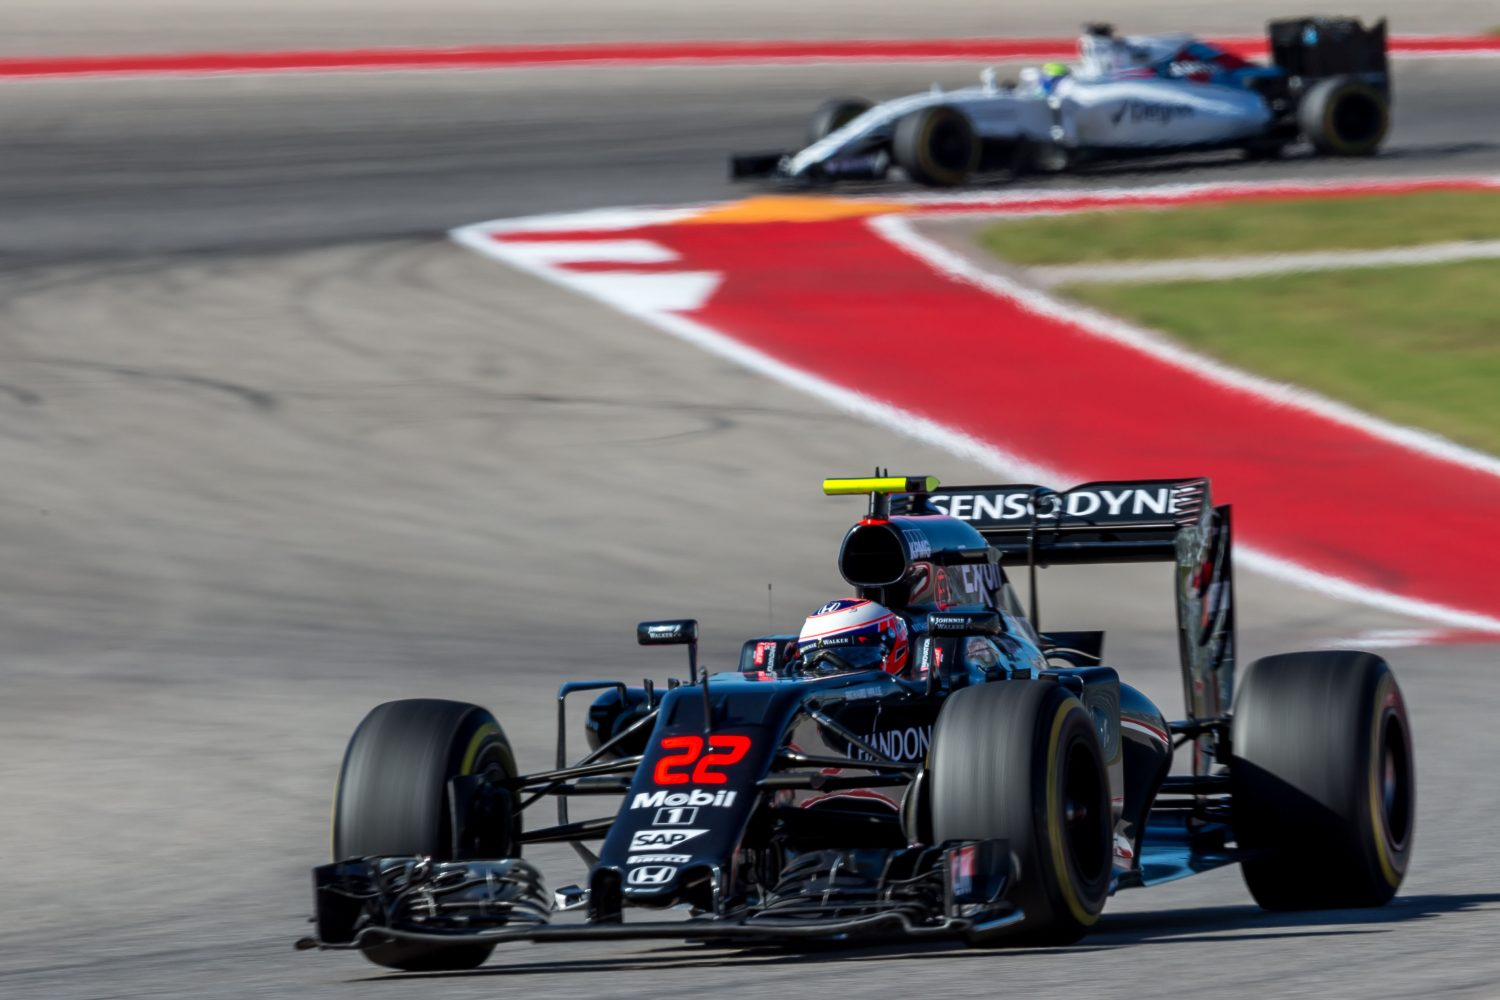 Formula One World Championship 2016, Round 18, United States Grand Prix, Austin, United States, Friday 21 October 2016 - Jenson Button (GBR) McLaren MP4-31.